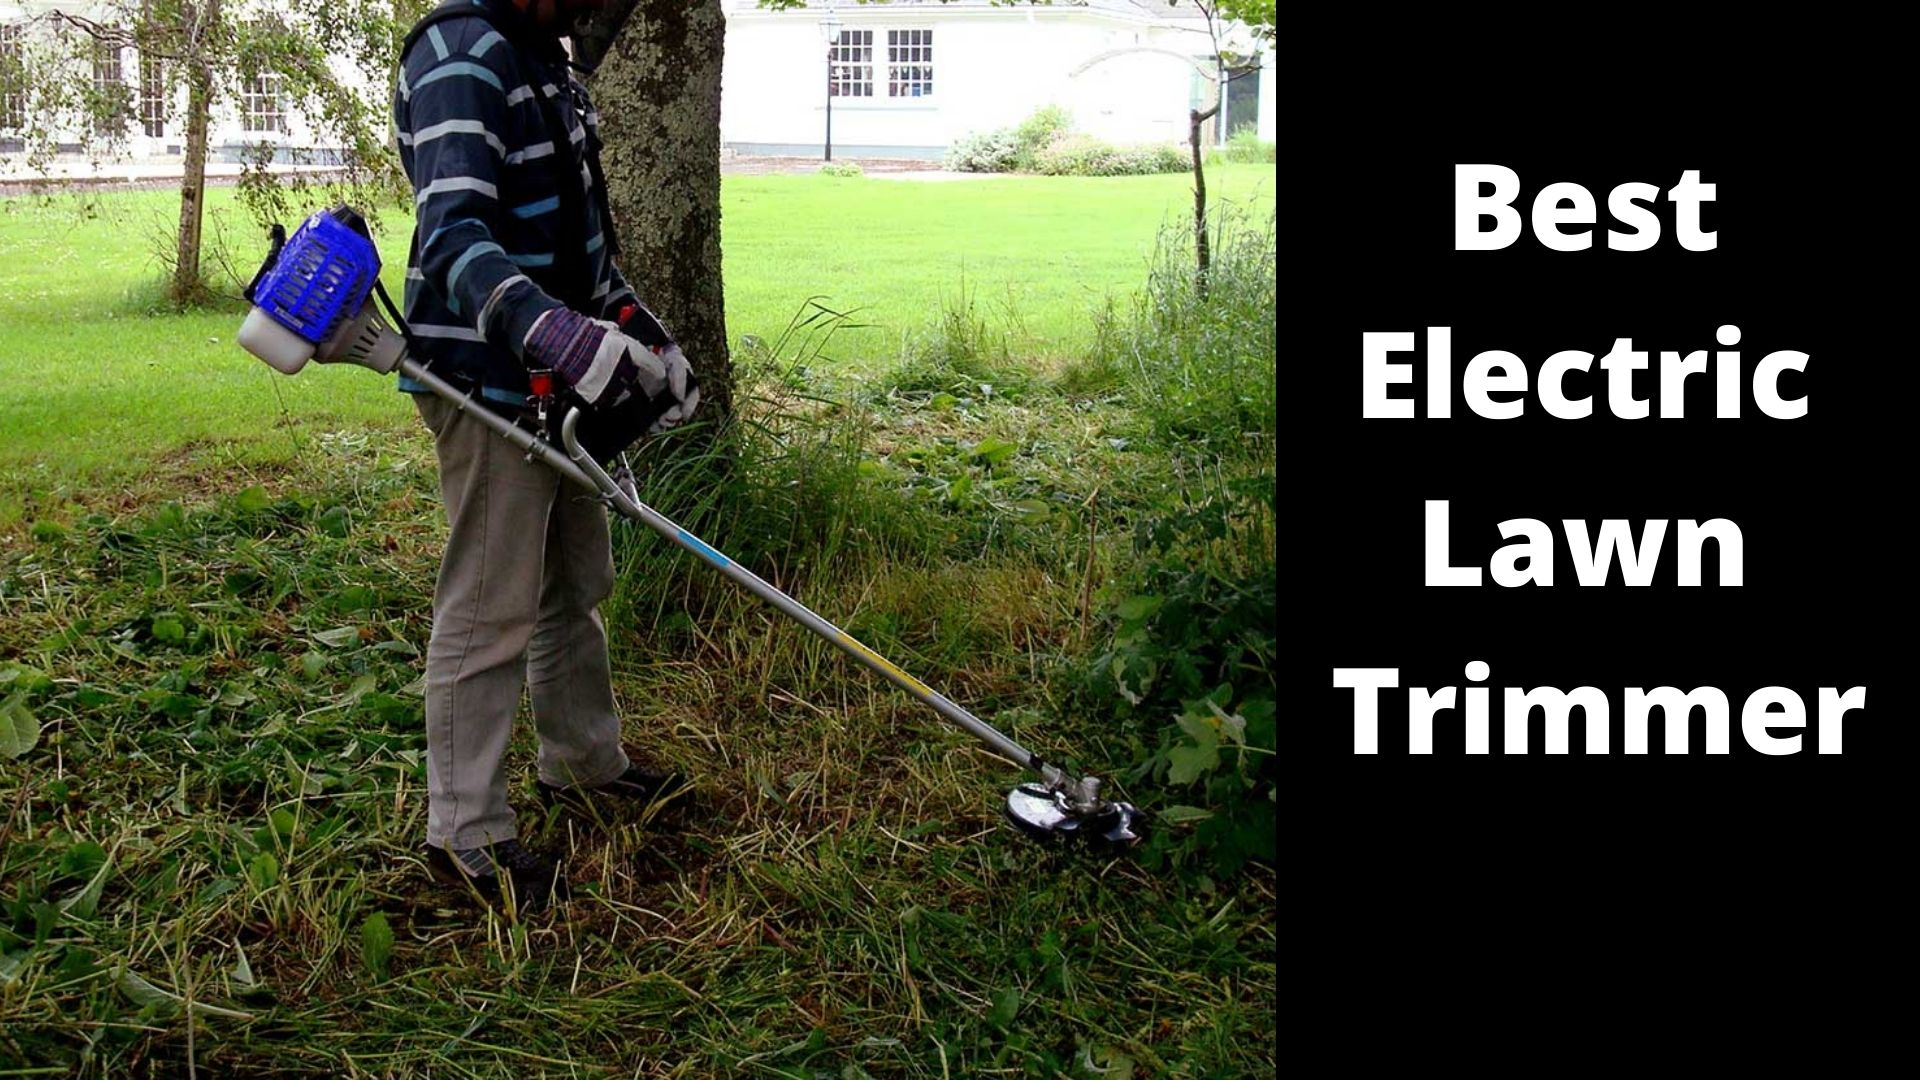 Best Electric Lawn Trimmer